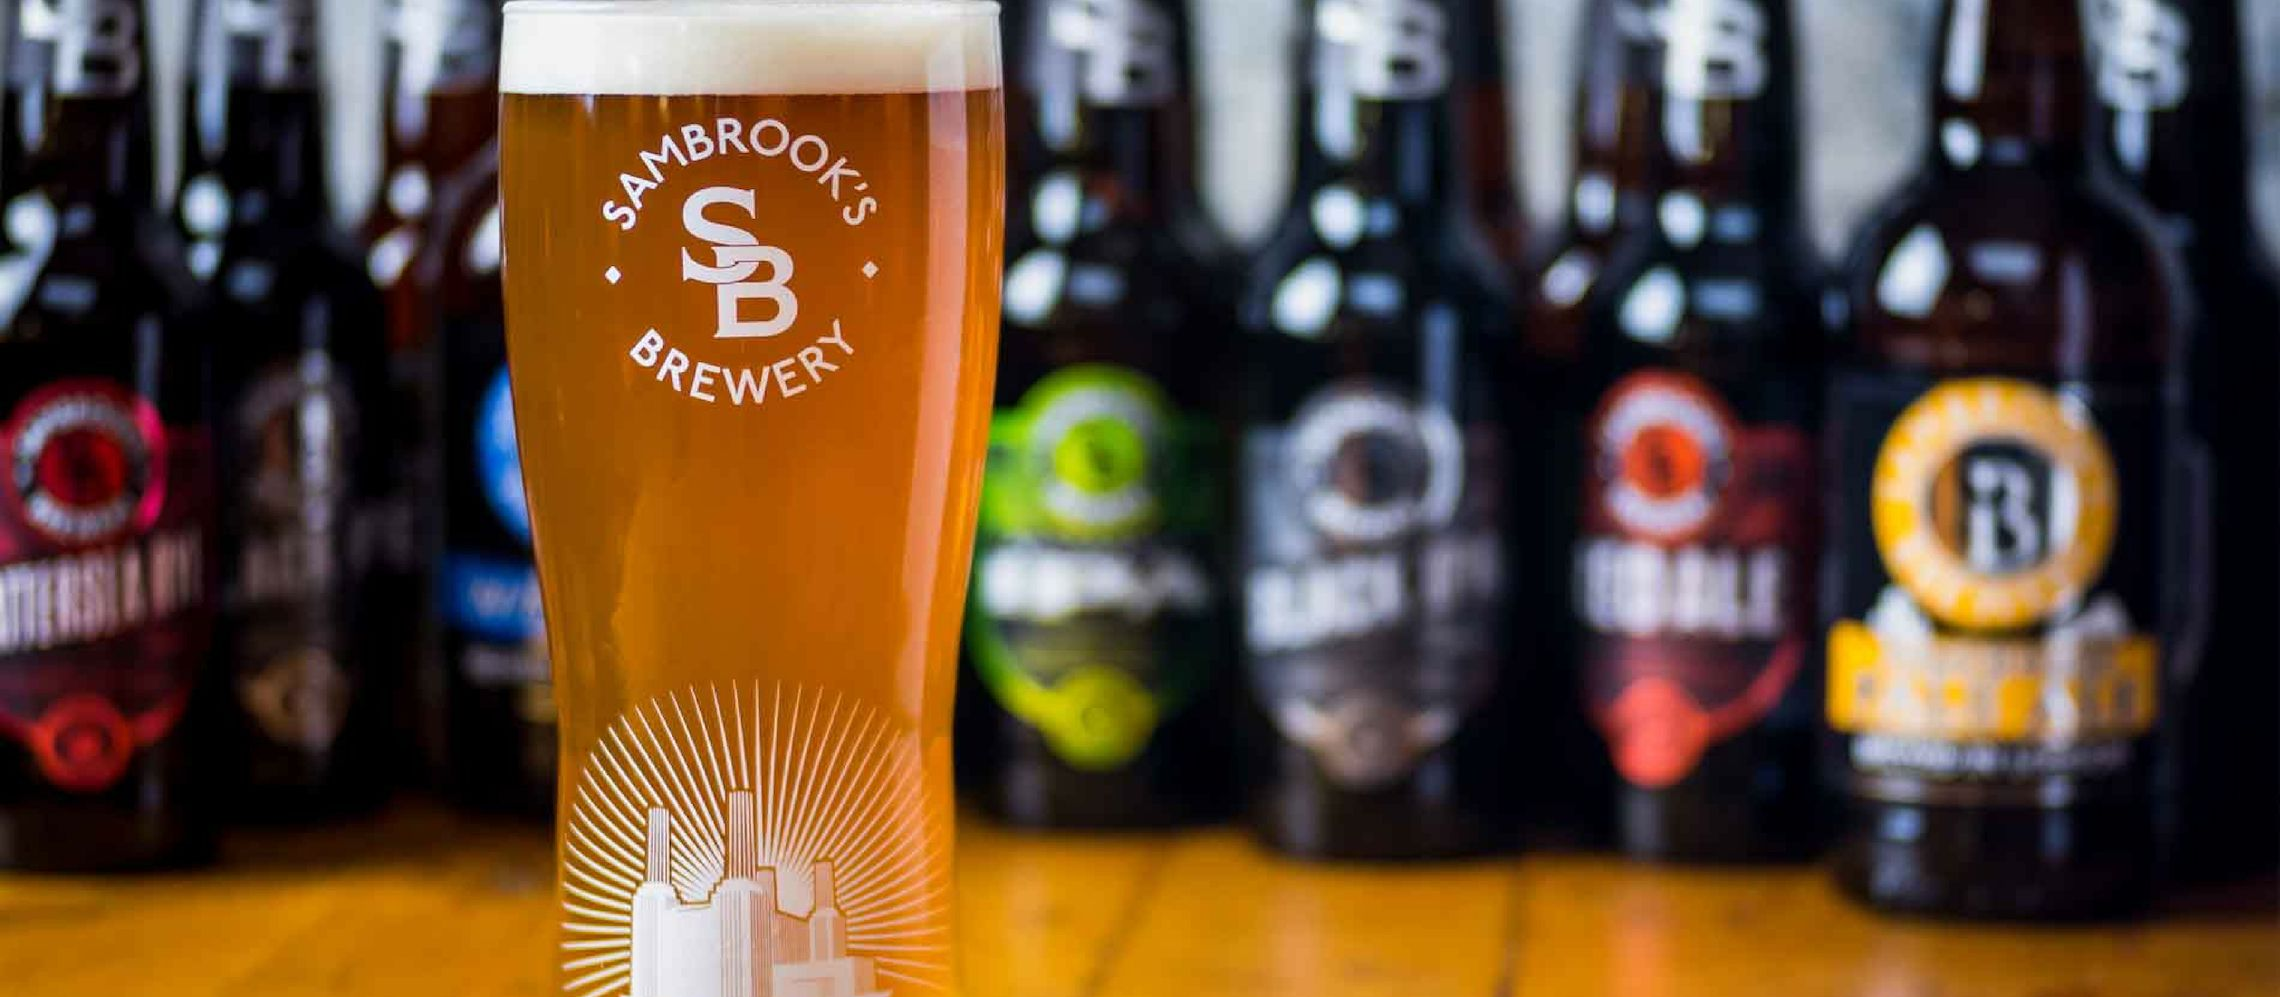 Photo for: UK's Sambrook's Brewery Garners Success at a Renowned Competition